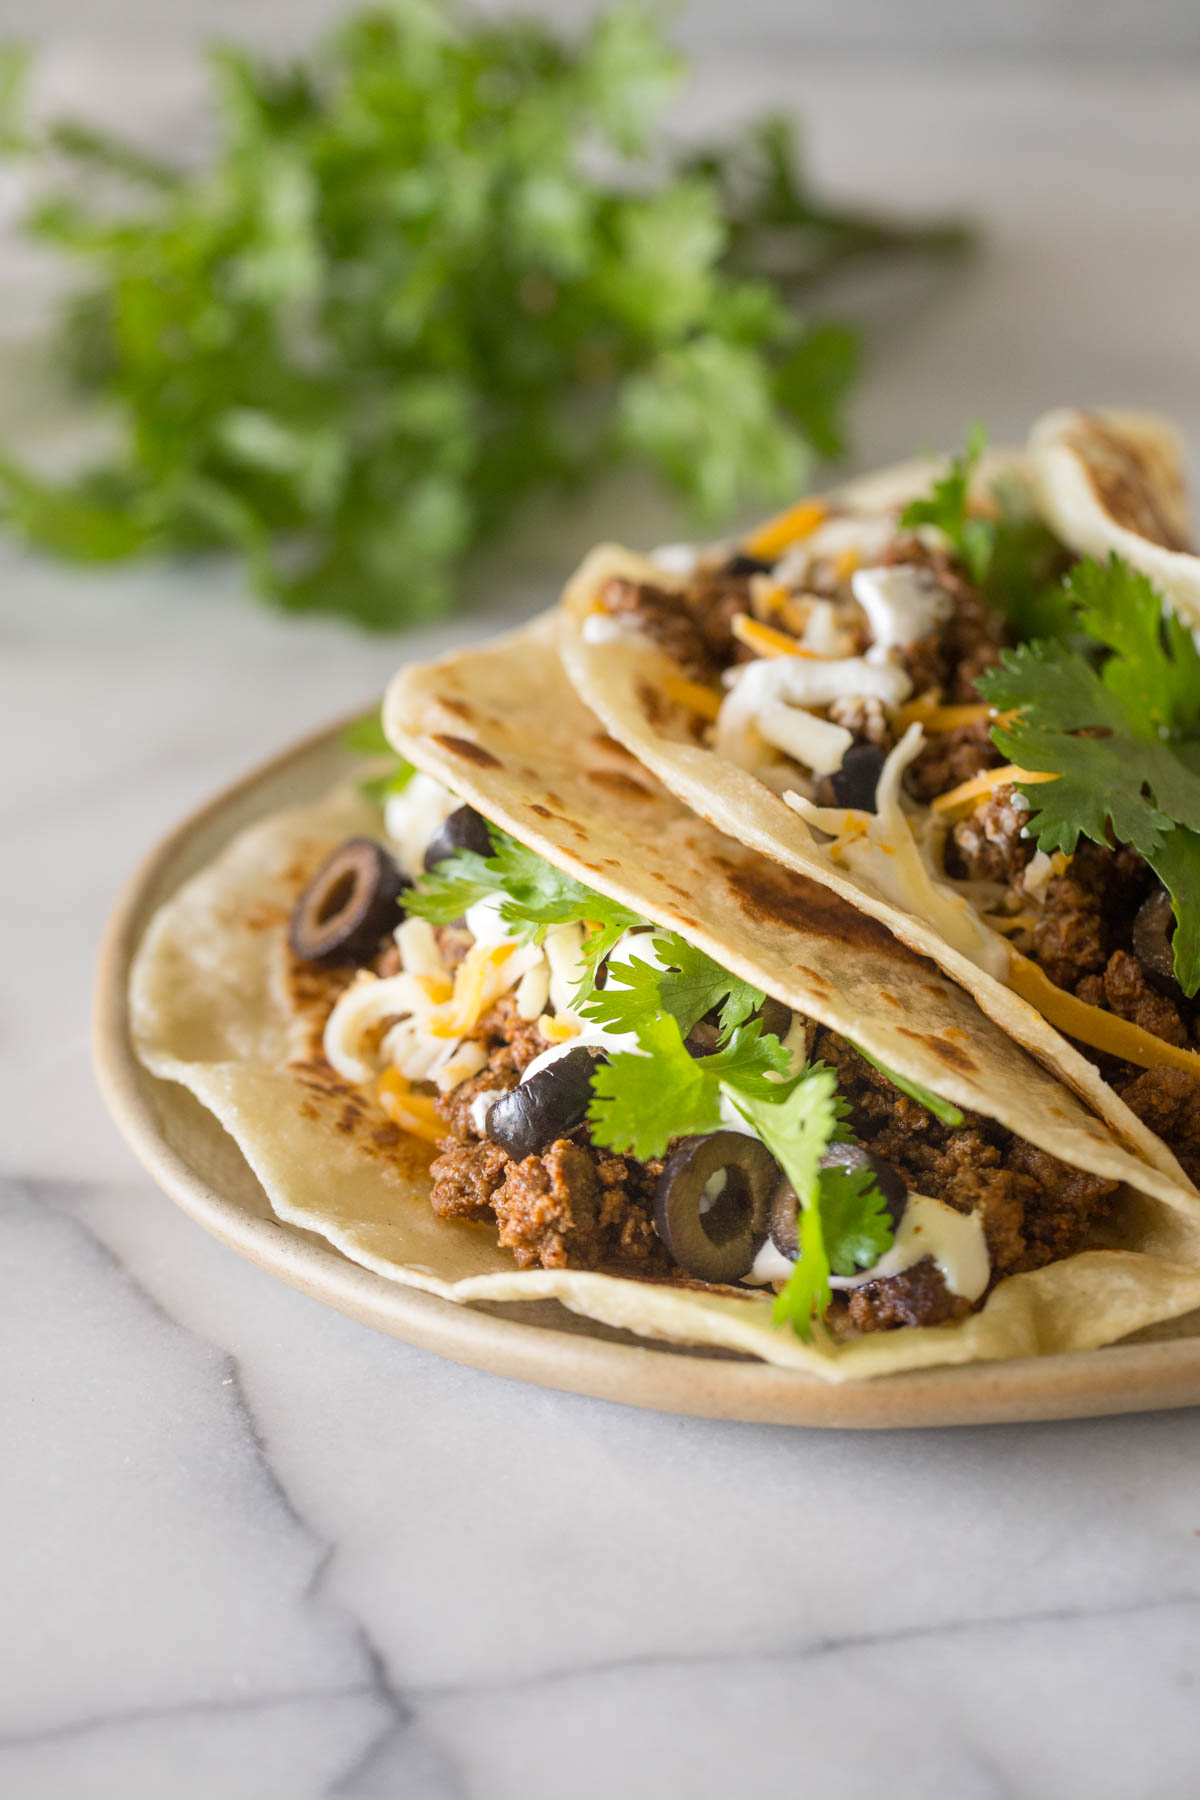 Two tacos topped with cilantro, black olives, and cheese on a plate.